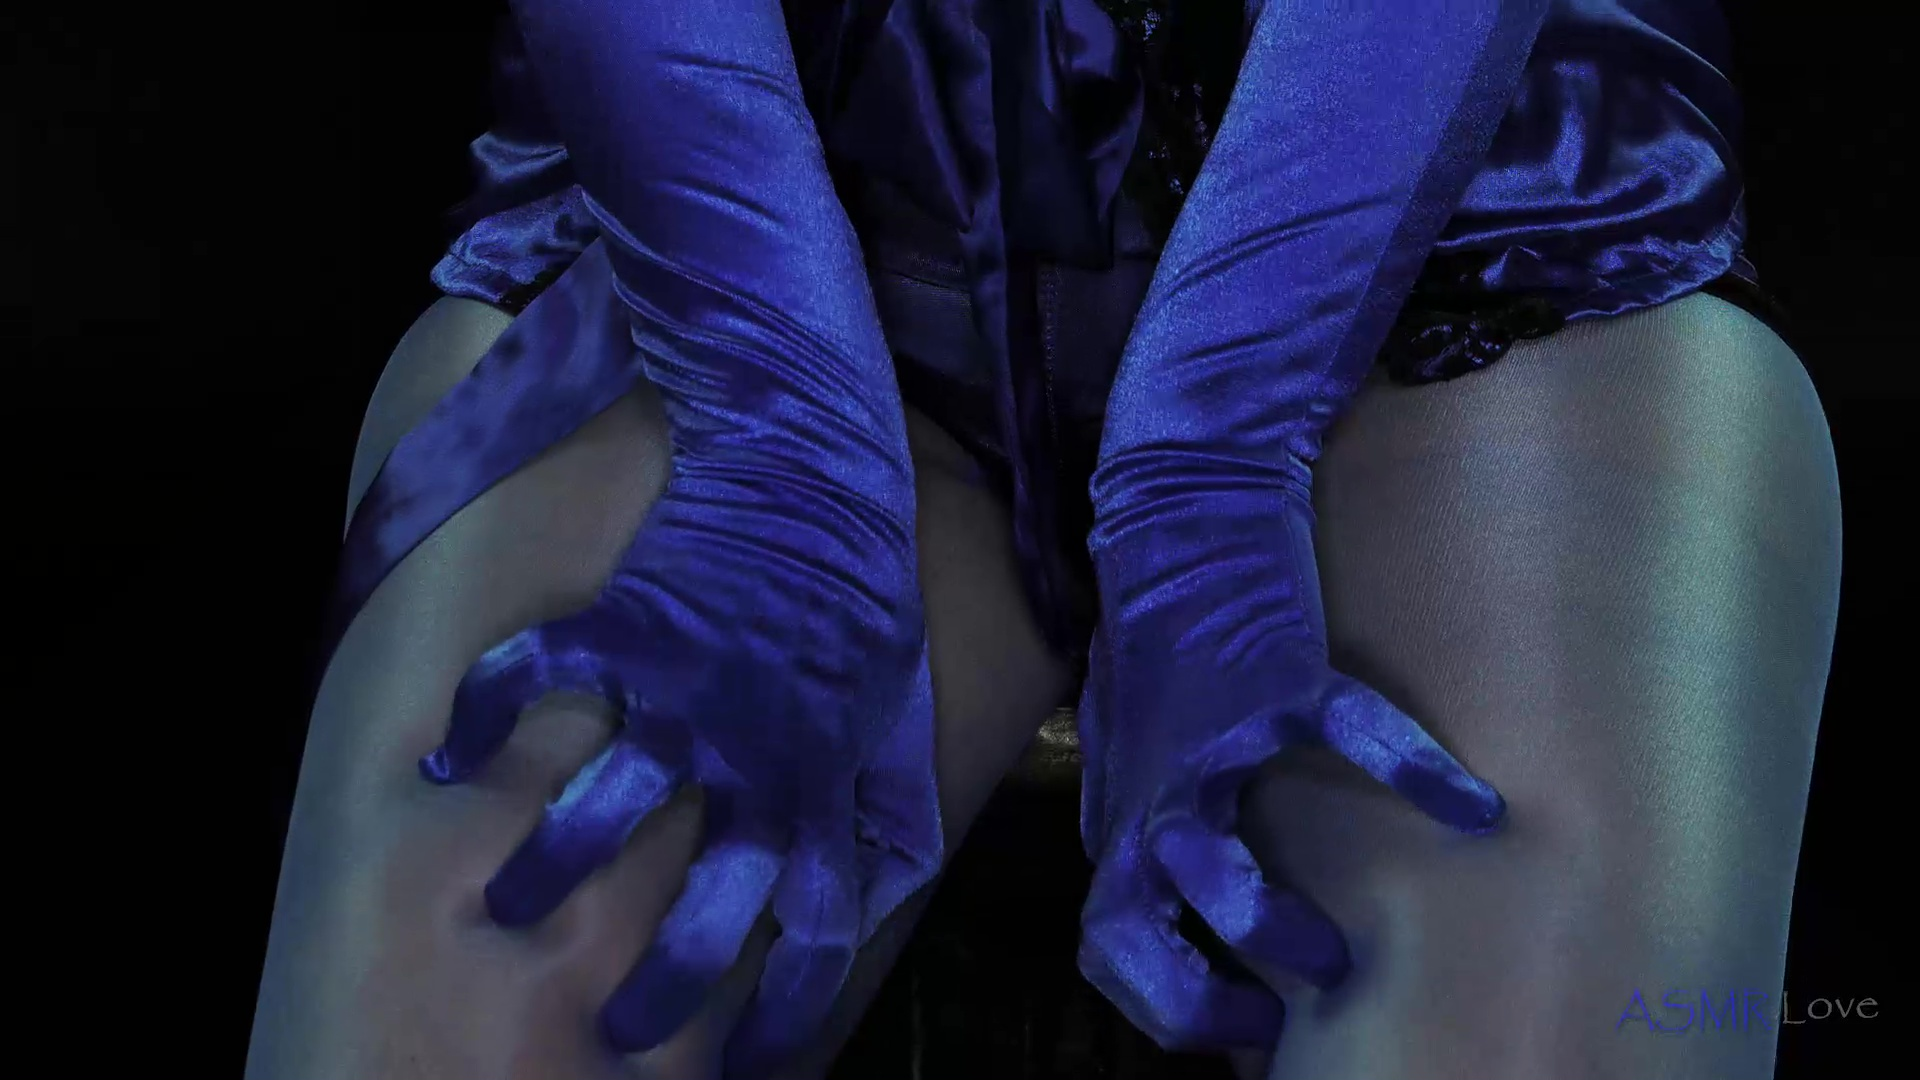 content/Lucy/Wanking in Blue Satin Panties ASMR - Lucy/3.jpg